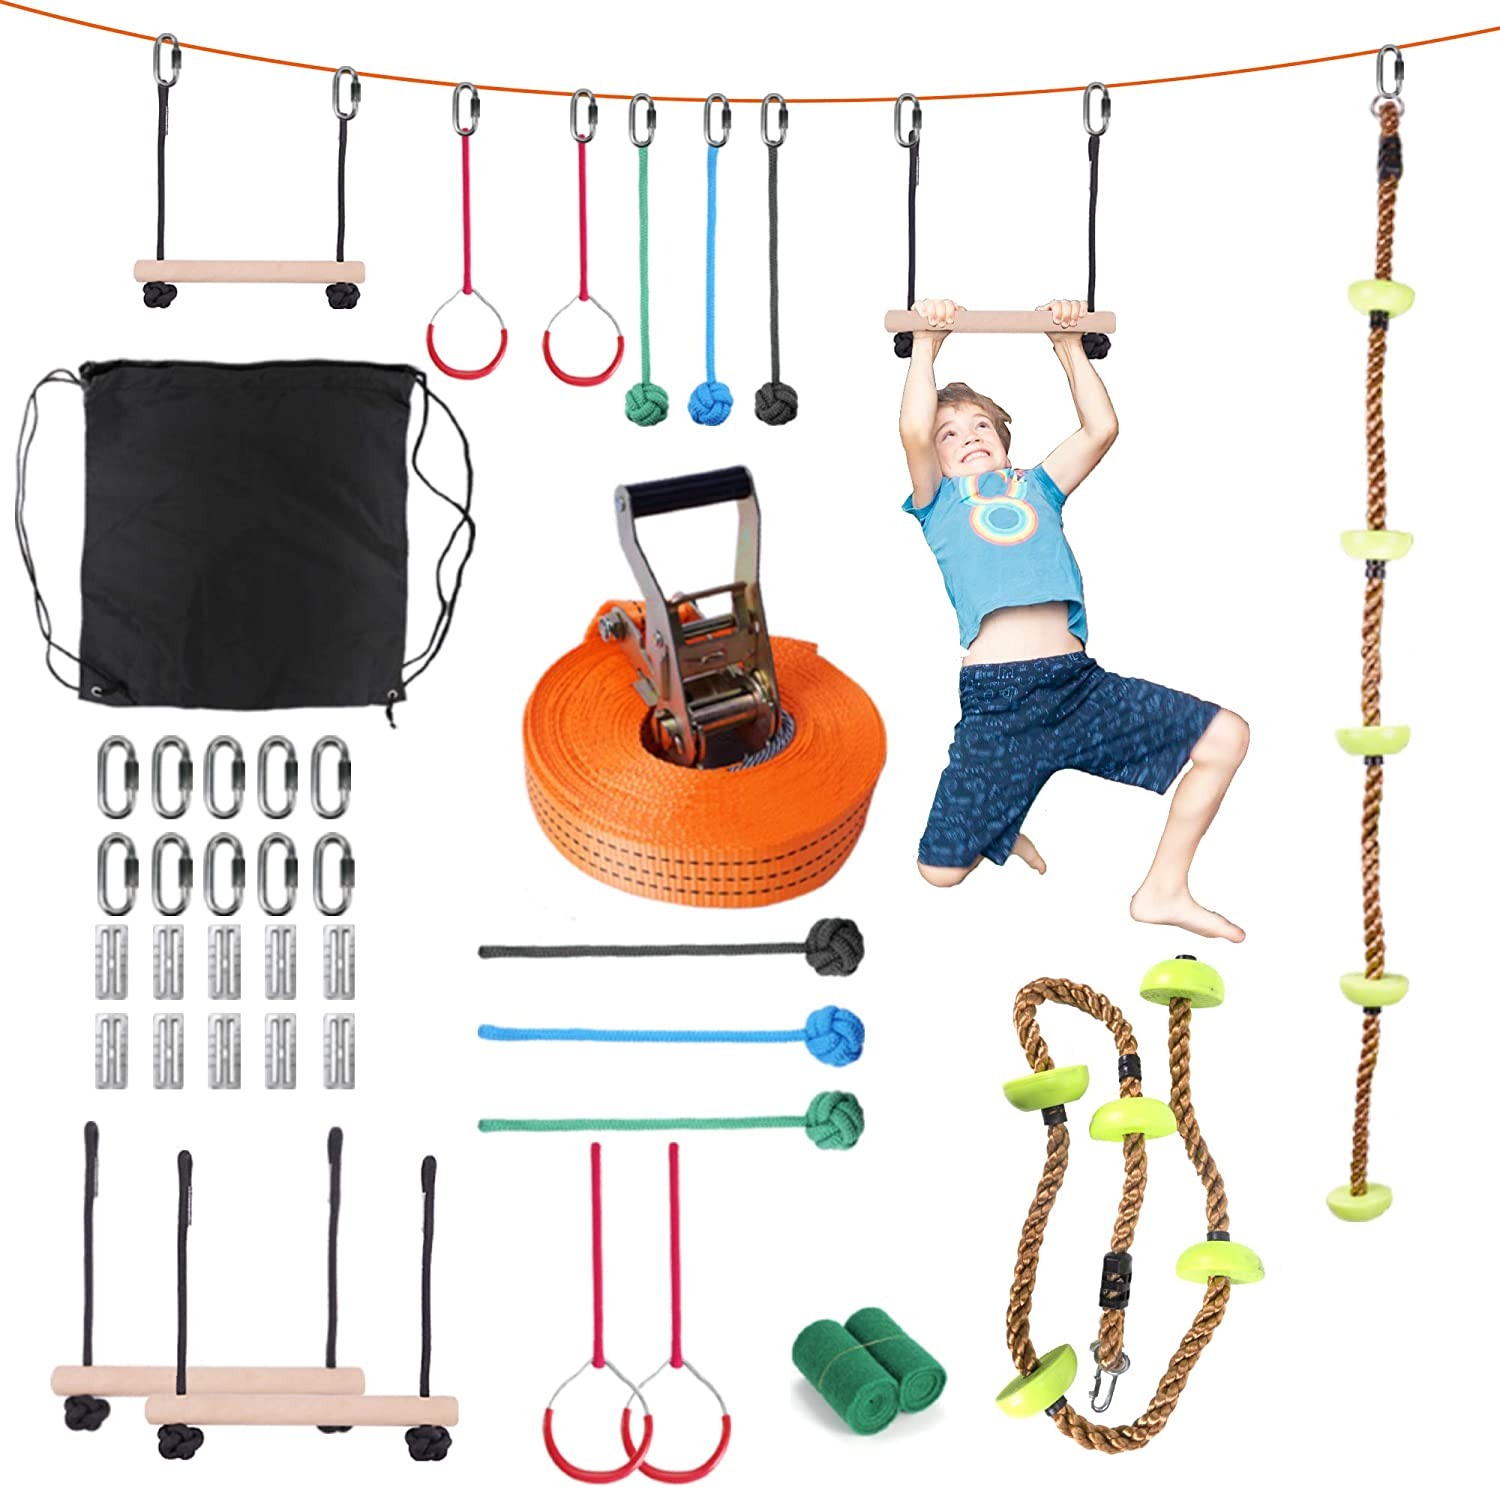 leofit Ninja Warrior Obstacle Course Slackline for Kids 40 Foot Monkey Bar Kit with Climbing Rope 8 Hanging Obstacles Training Line for Backyard Garden Park Playground Equipment